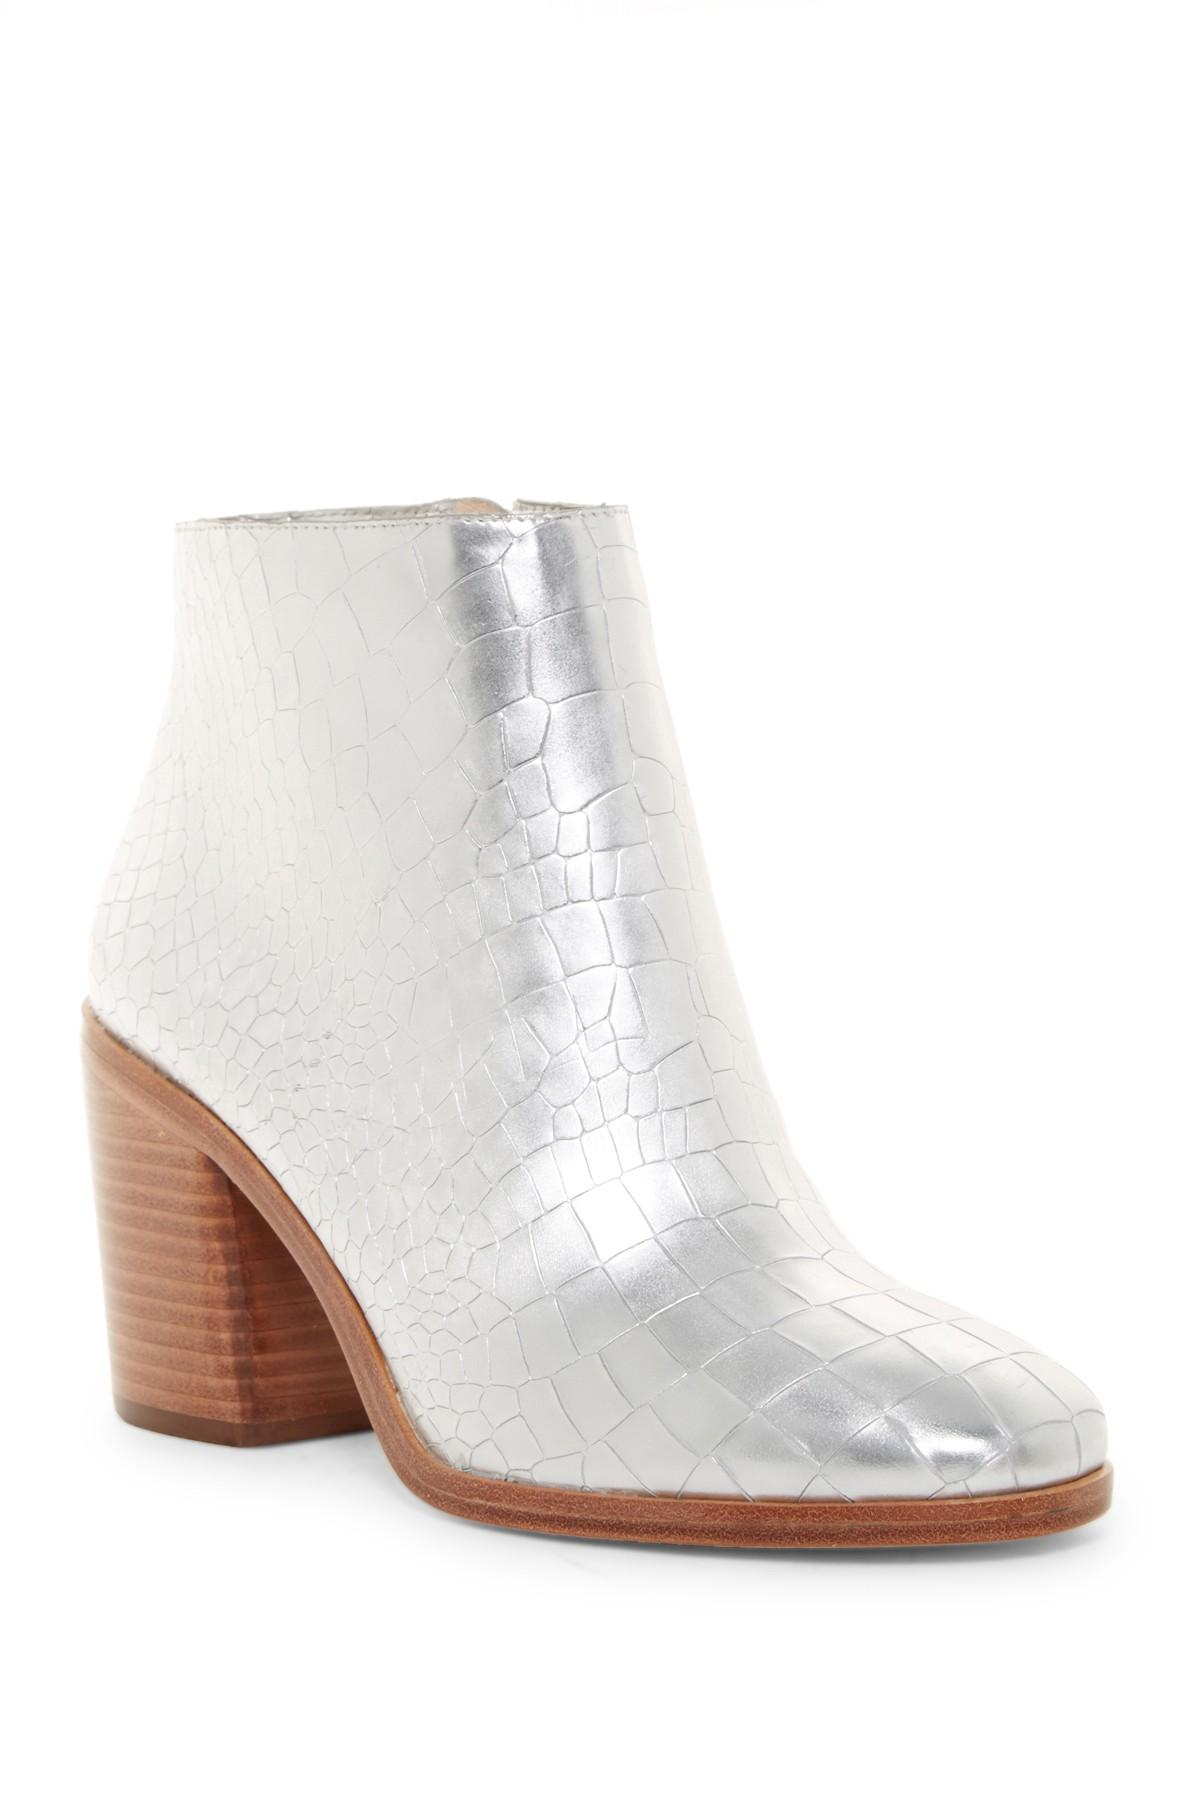 ac4bcaf7cfcd Lyst - Pour La Victoire Winona Croc Embossed Boot in Metallic